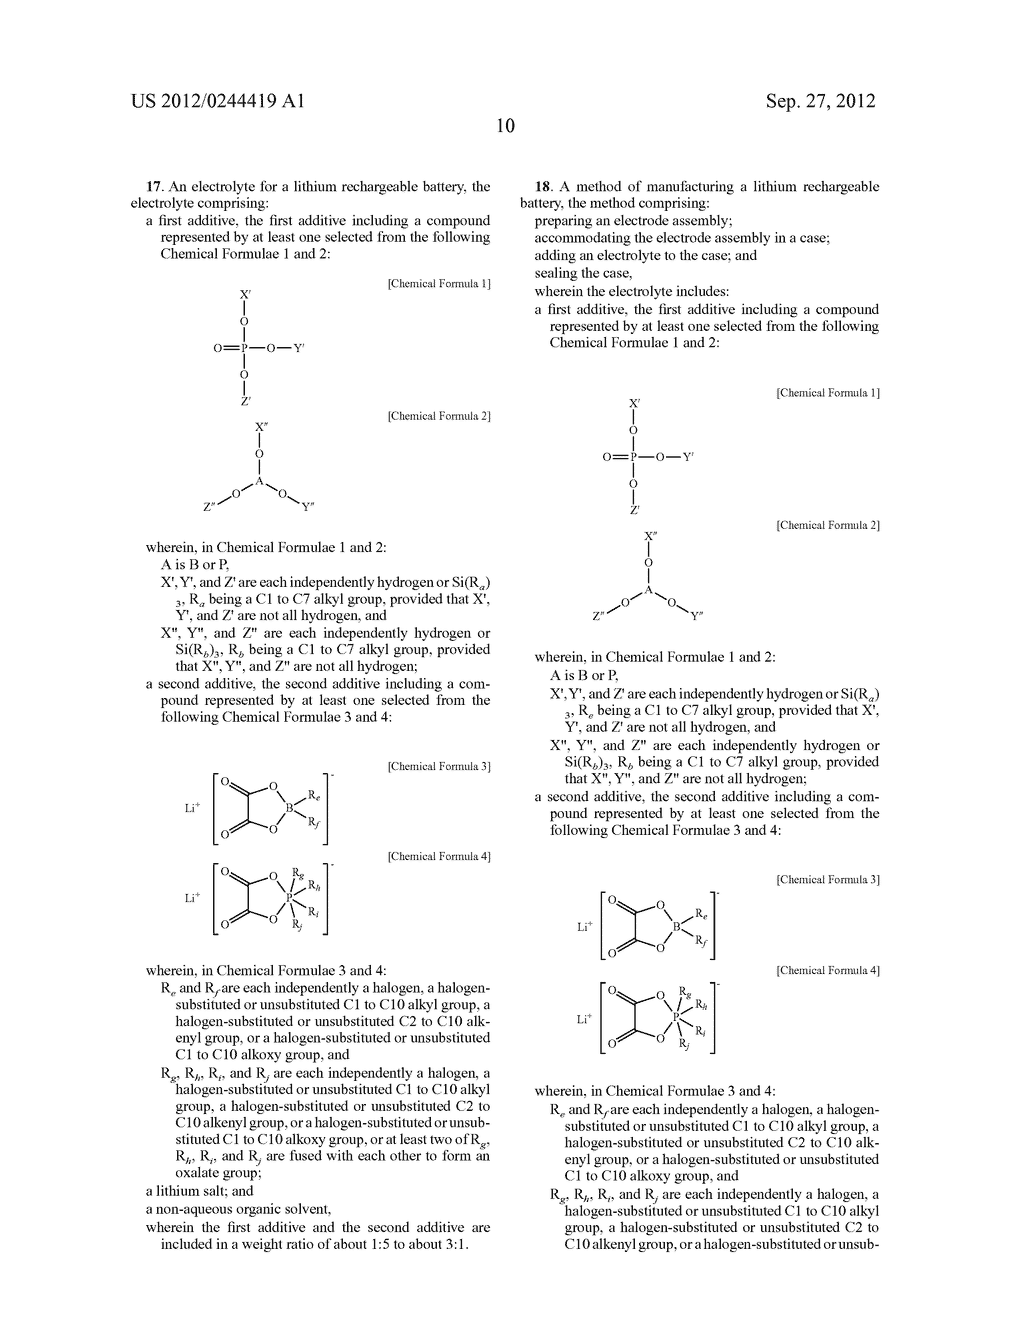 ELECTROLYTE FOR A LITHIUM RECHARGEABLE BATTERY, LITHIUM RECHARGEABLE     BATTERY INCLUDING THE SAME, AND METHOD OF MANUFACTURING A LITHIUM     RECHARGEABLE BATTERY - diagram, schematic, and image 12